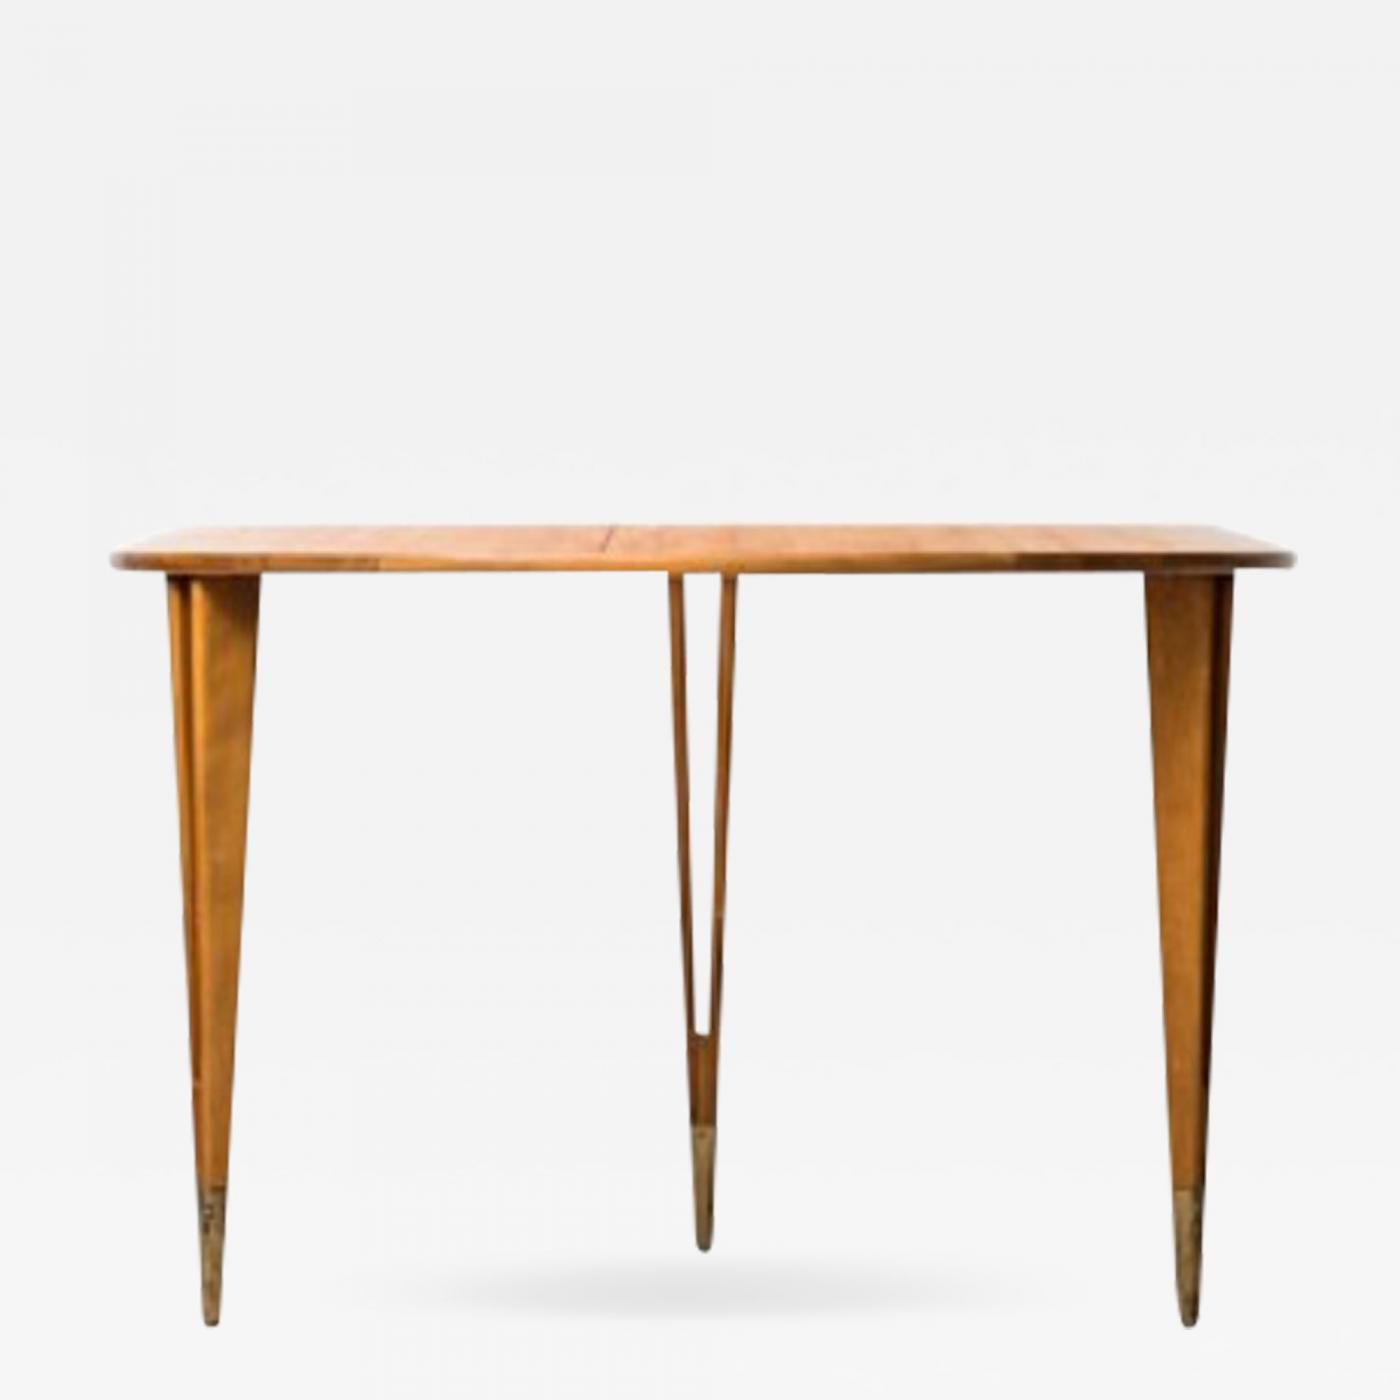 Bertil Fridhagen – Bertil Fridhagen Coffee Table Pertaining To Intarsia Console Tables (View 6 of 30)